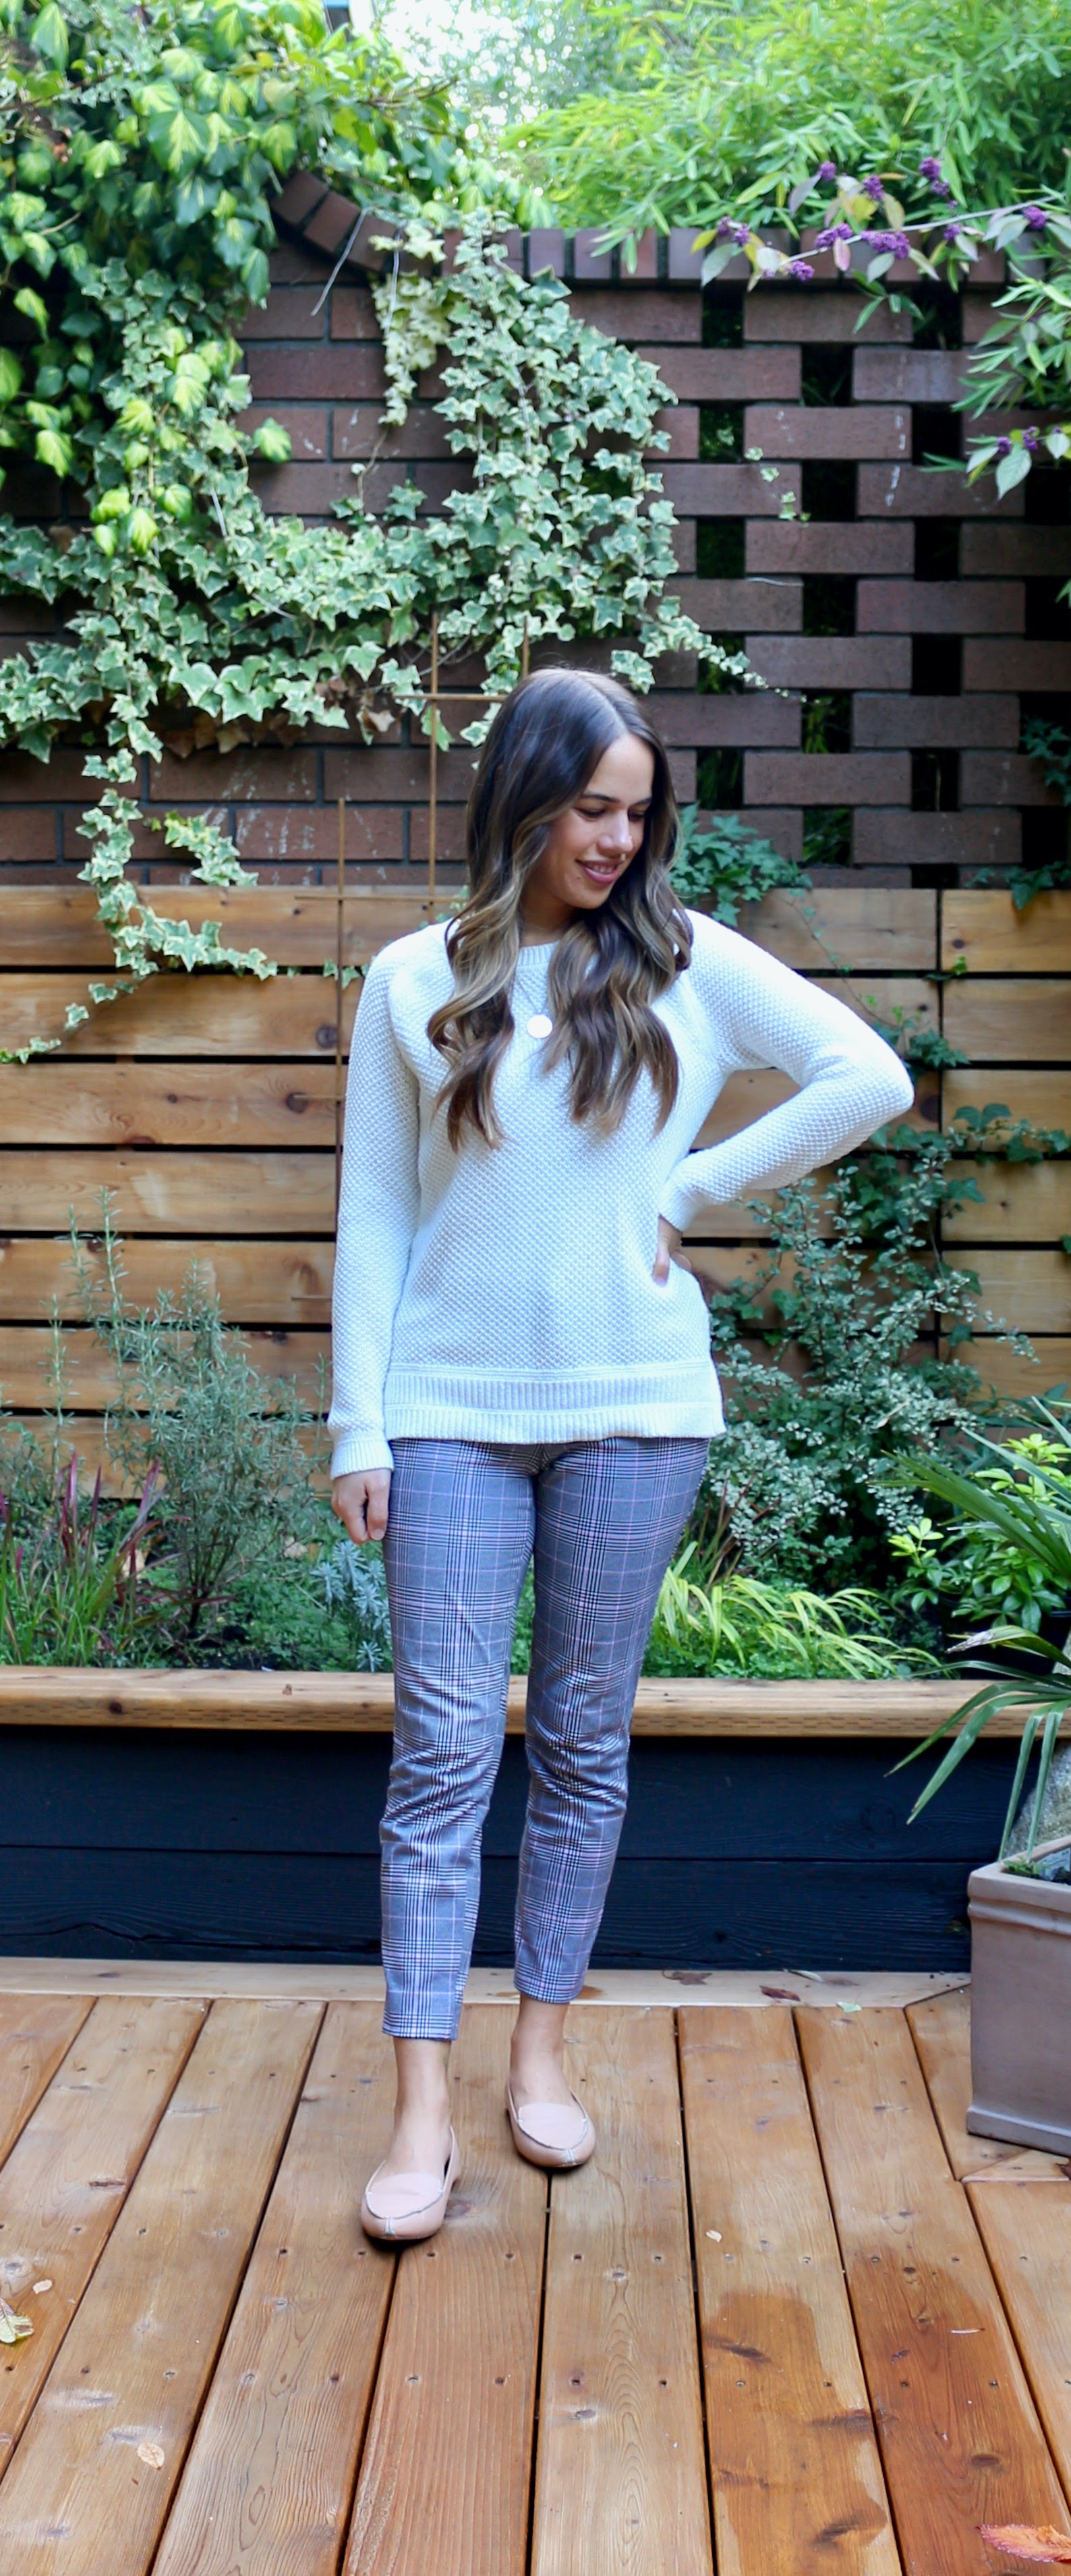 Jules in Flats - Textured Knit Sweater with Plaid Ankle Pants (Business Casual Workwear on a Budget)